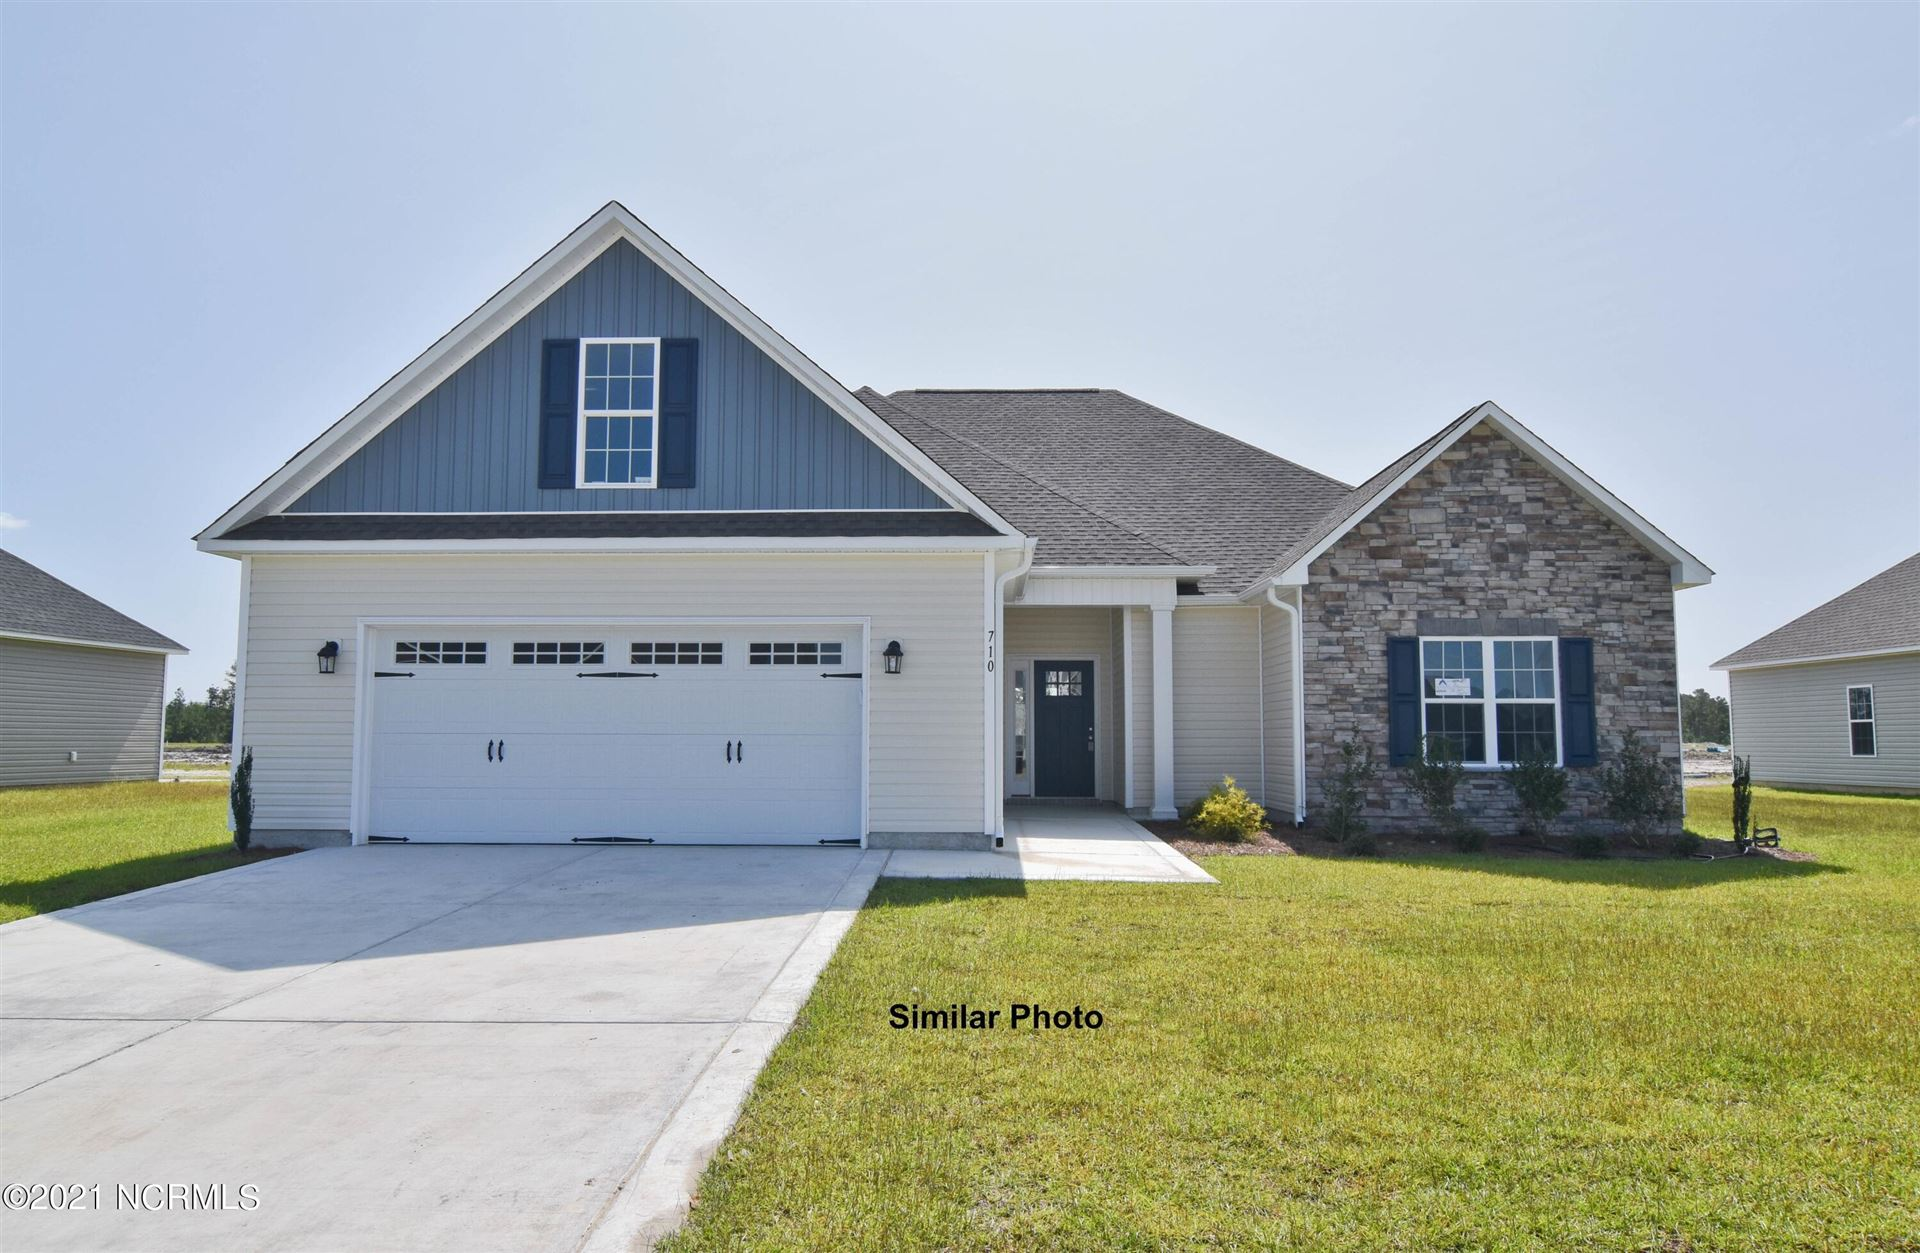 Photo of 434 Water Wagon Trail, Jacksonville, NC 28546 (MLS # 100292279)